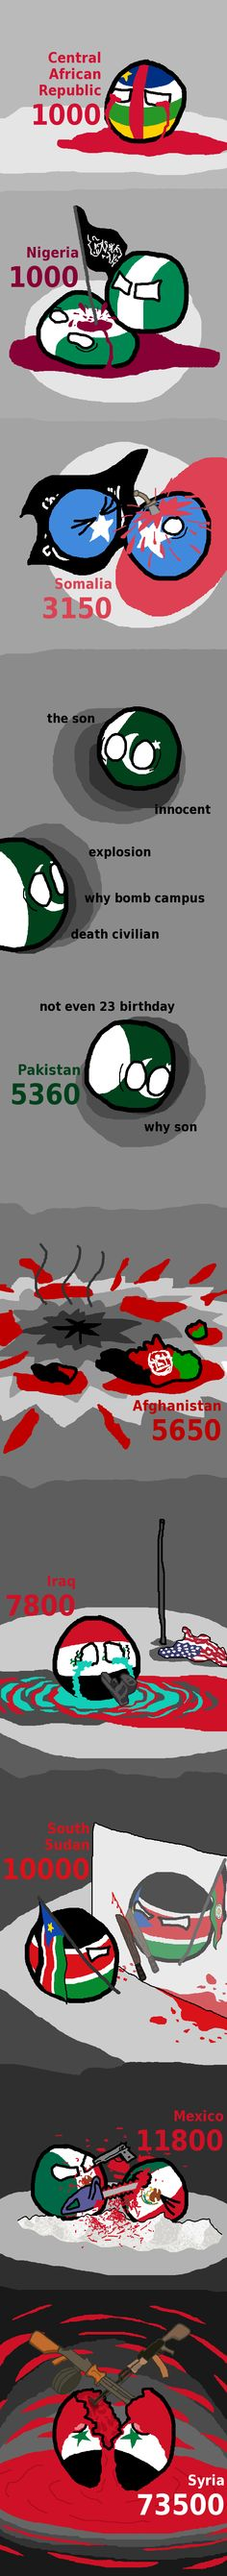 Ongoing Conflicts: Fatalities in 2013 (Central Africa Republic, Nigeria, Somalia, Pakistan, Afghanistan, Iraq, South Sudan, Mexico, Syria ) by mO4GV9eywMPMw3Xr  #polandball #countryball